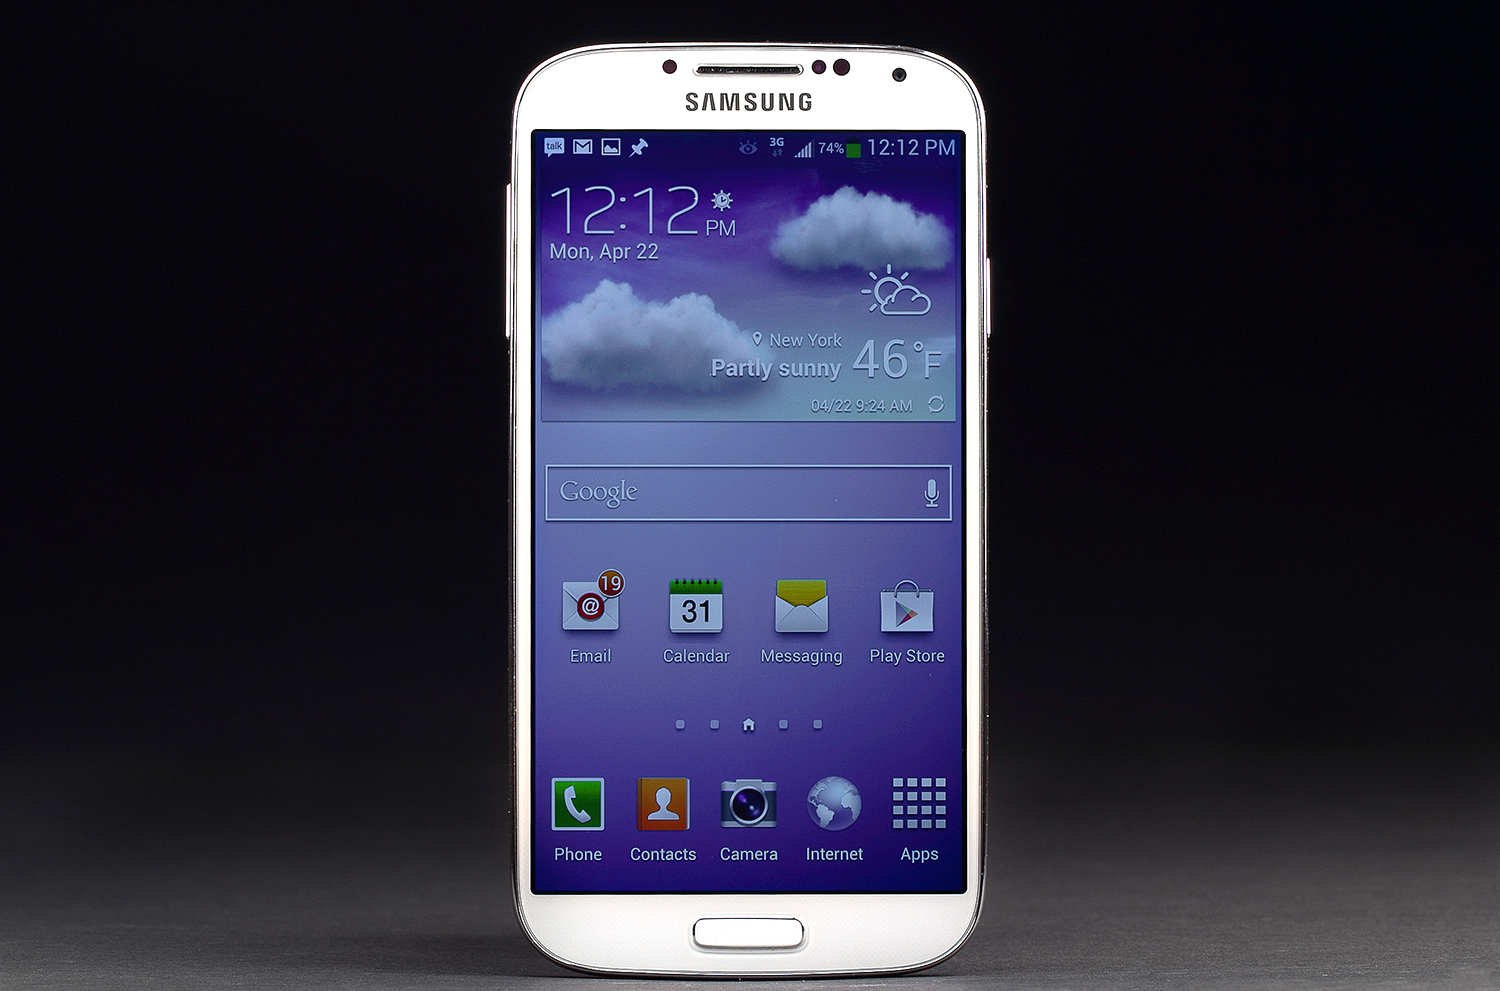 samsung galaxy s4 gt i9505 lte qualcomm version on android jelly bean rooting guide